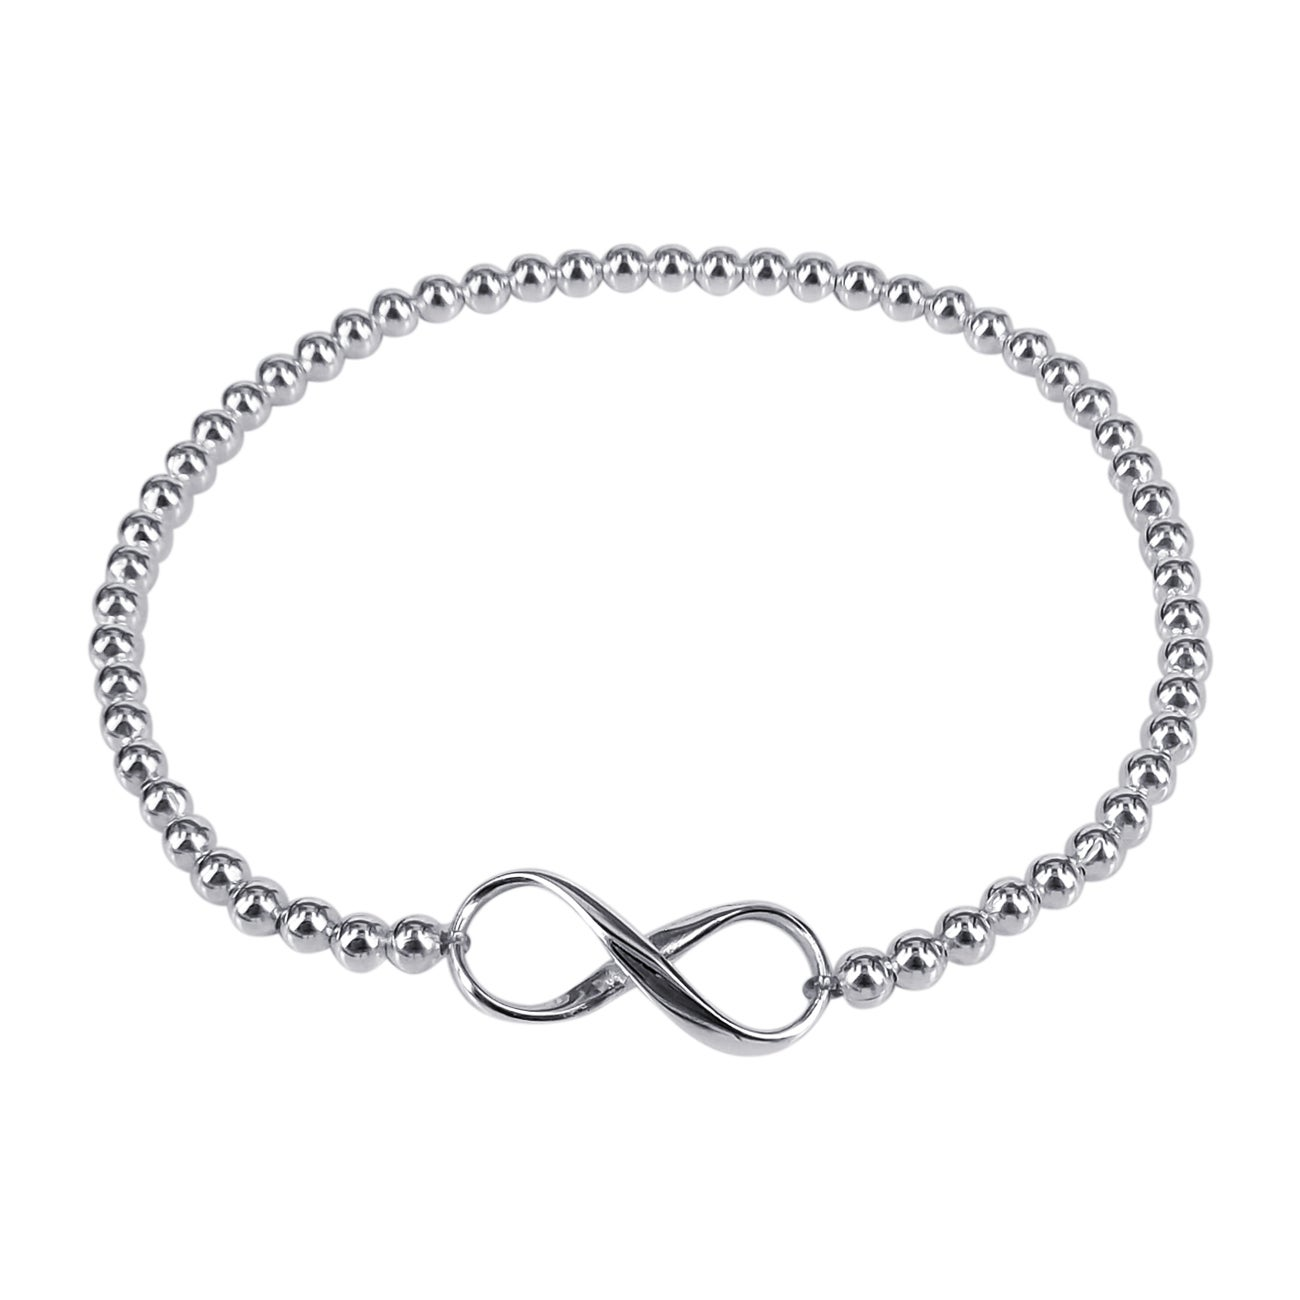 Endless Love Infinity Sterling Silver Elastic Bead Bracelet (Thailand)